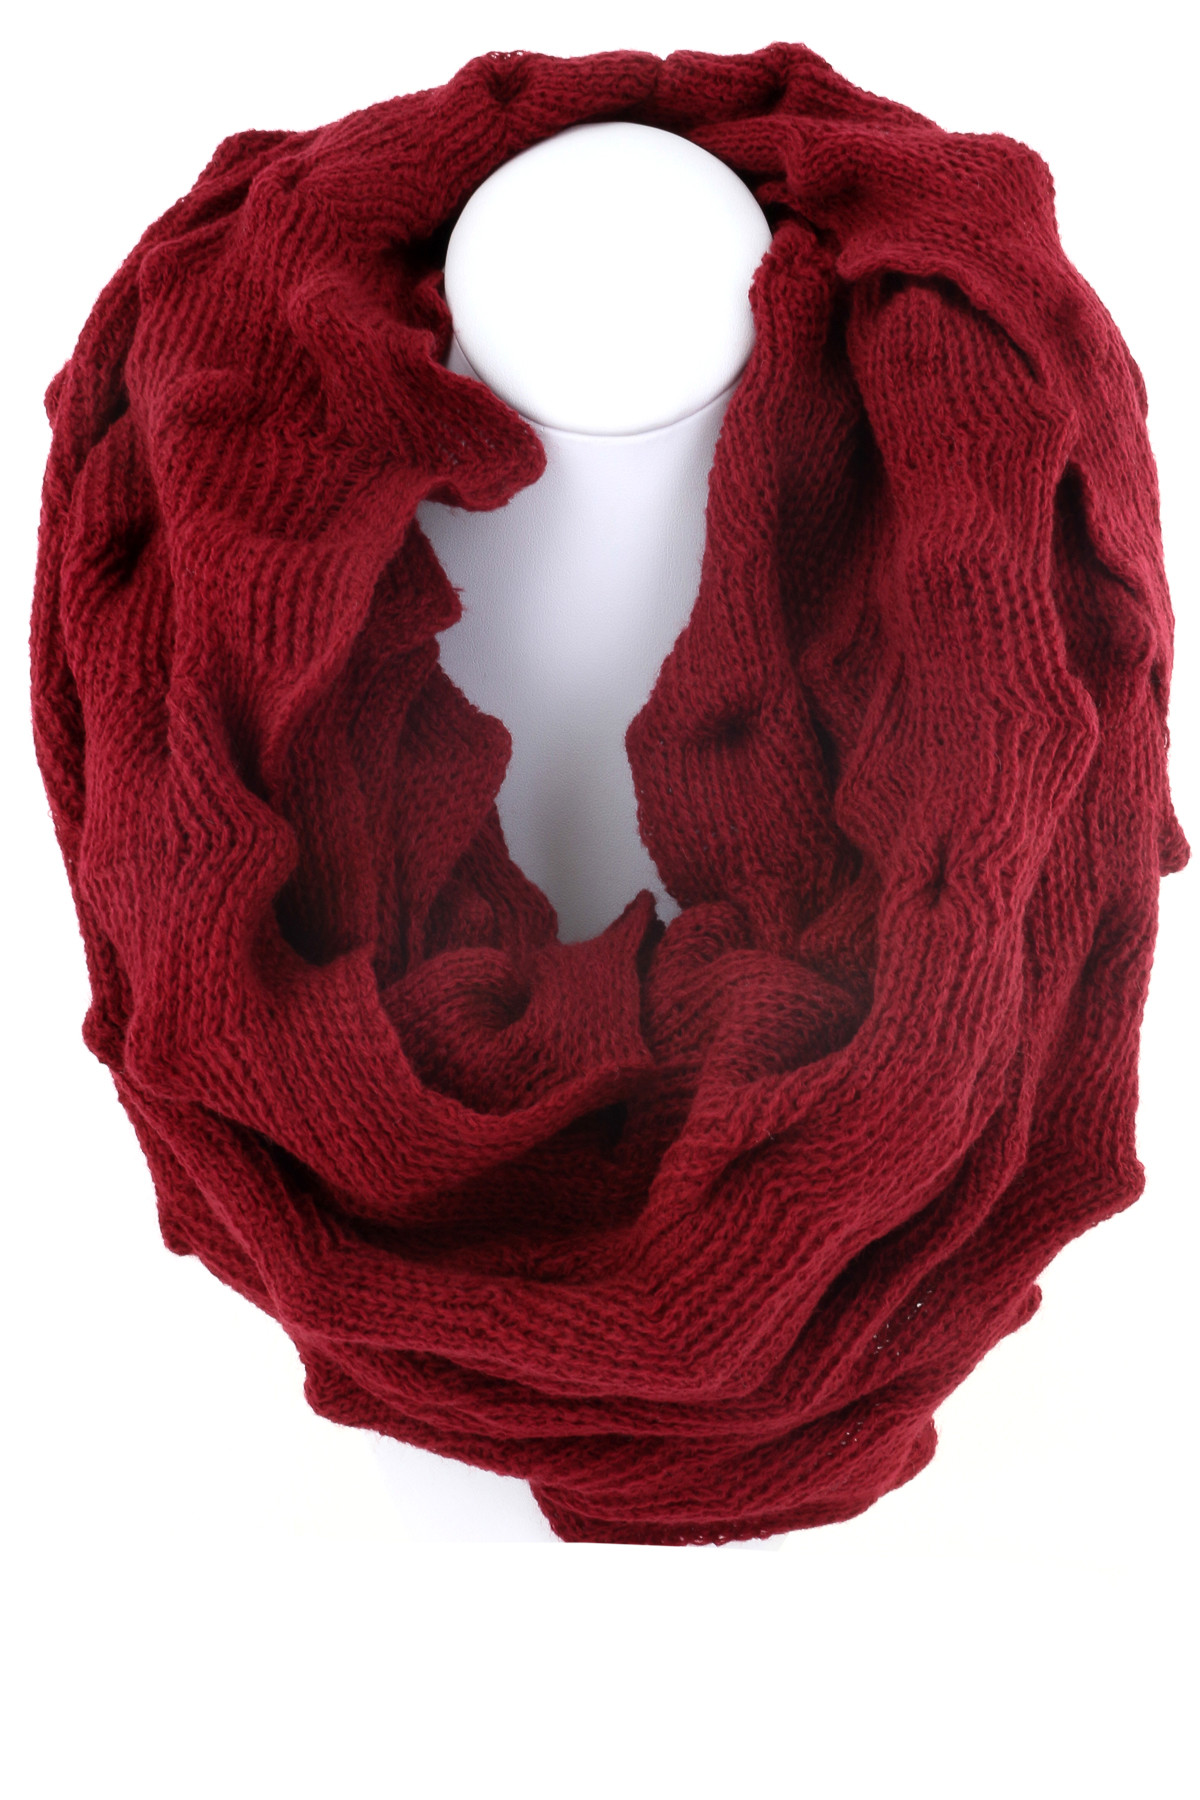 Best Of Ruffled Knit Scarf Scarves Knit Ruffle Scarf Of Marvelous 50 Pics Knit Ruffle Scarf